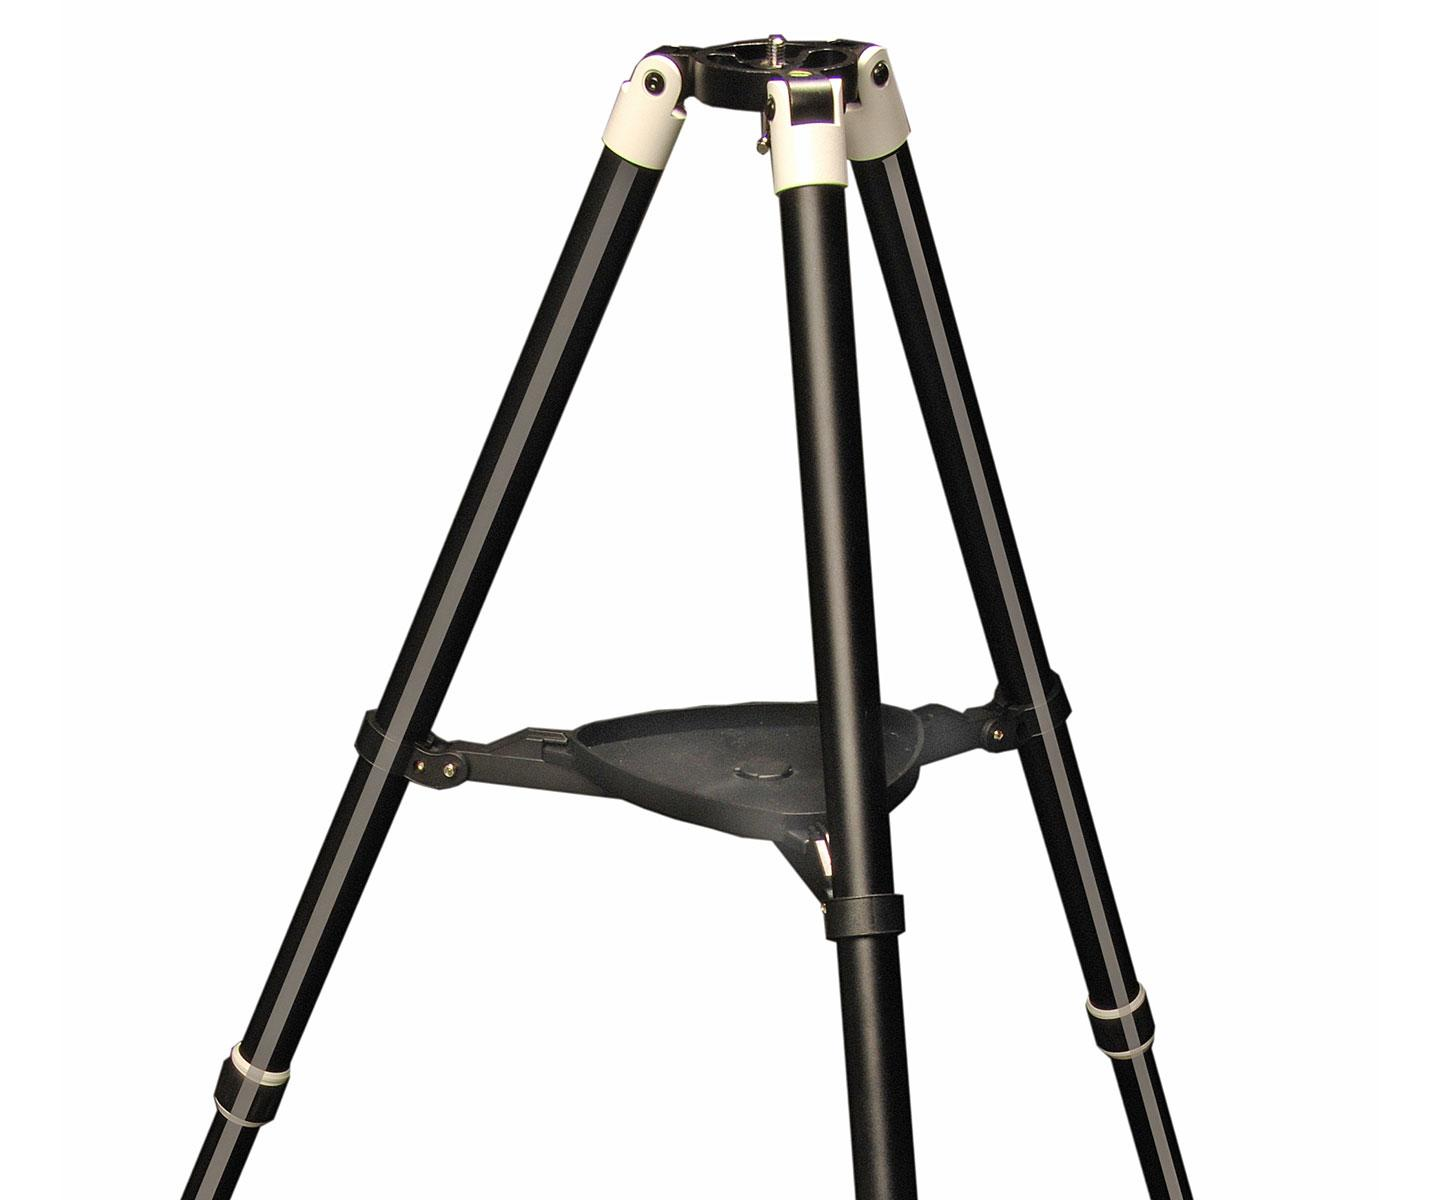 Treppiede in acciao per astroinseguotore Skywatcher Star Adventurer e montatura Skywatcher AZ GTI